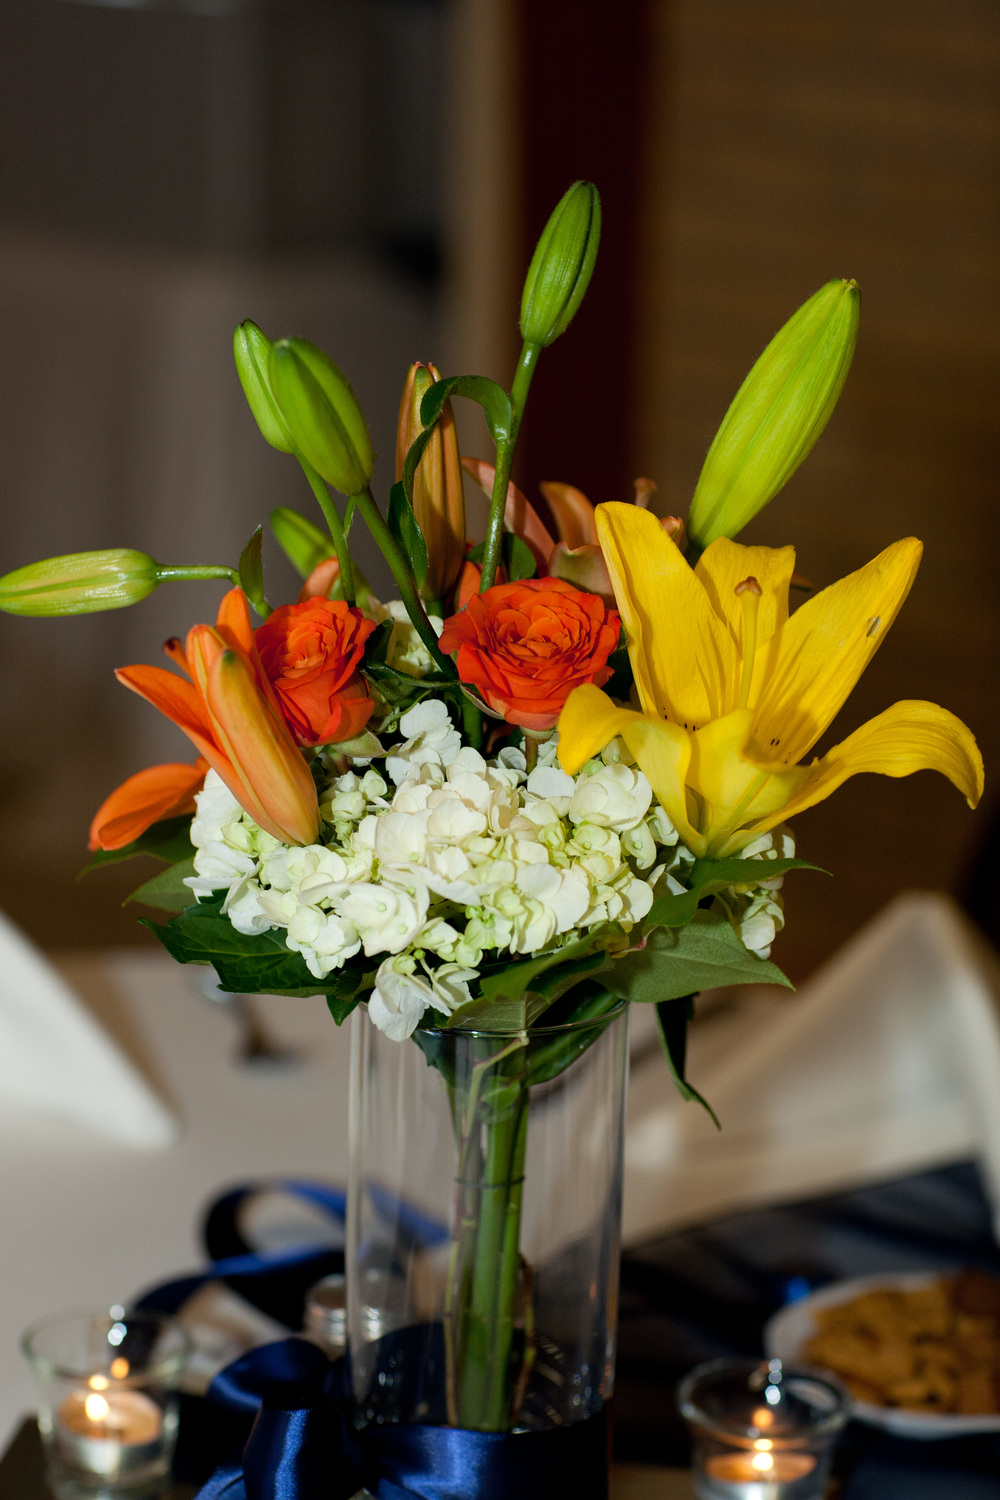 11. Orange and yellow lily with hydrangea centerpiece